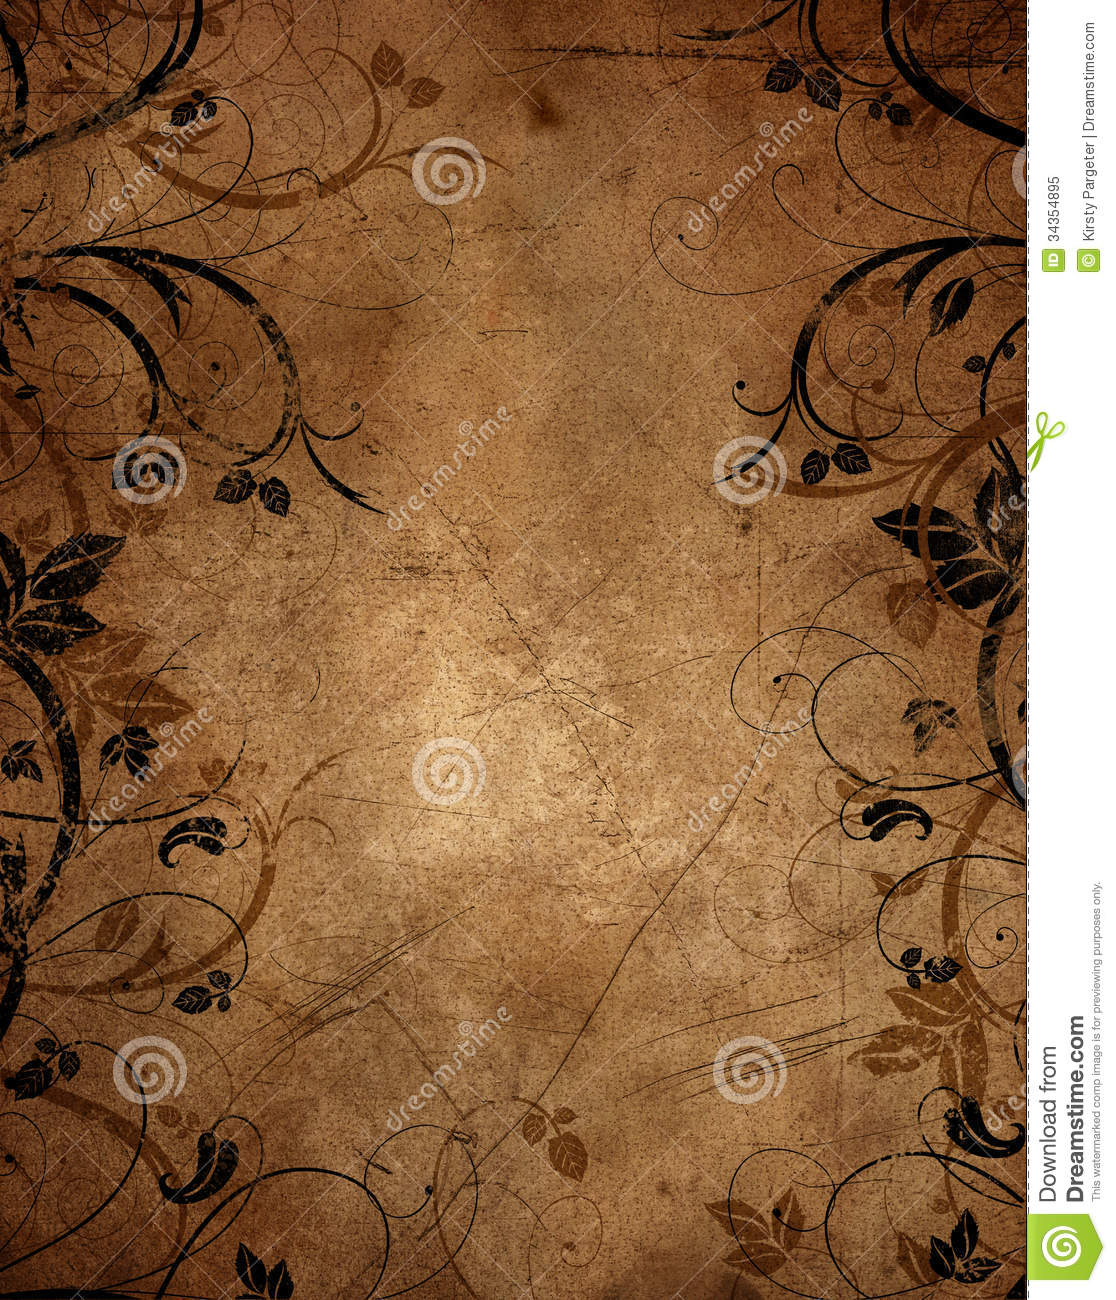 Floral Grunge Background Royalty Free Stock Photo - Image: 34354895